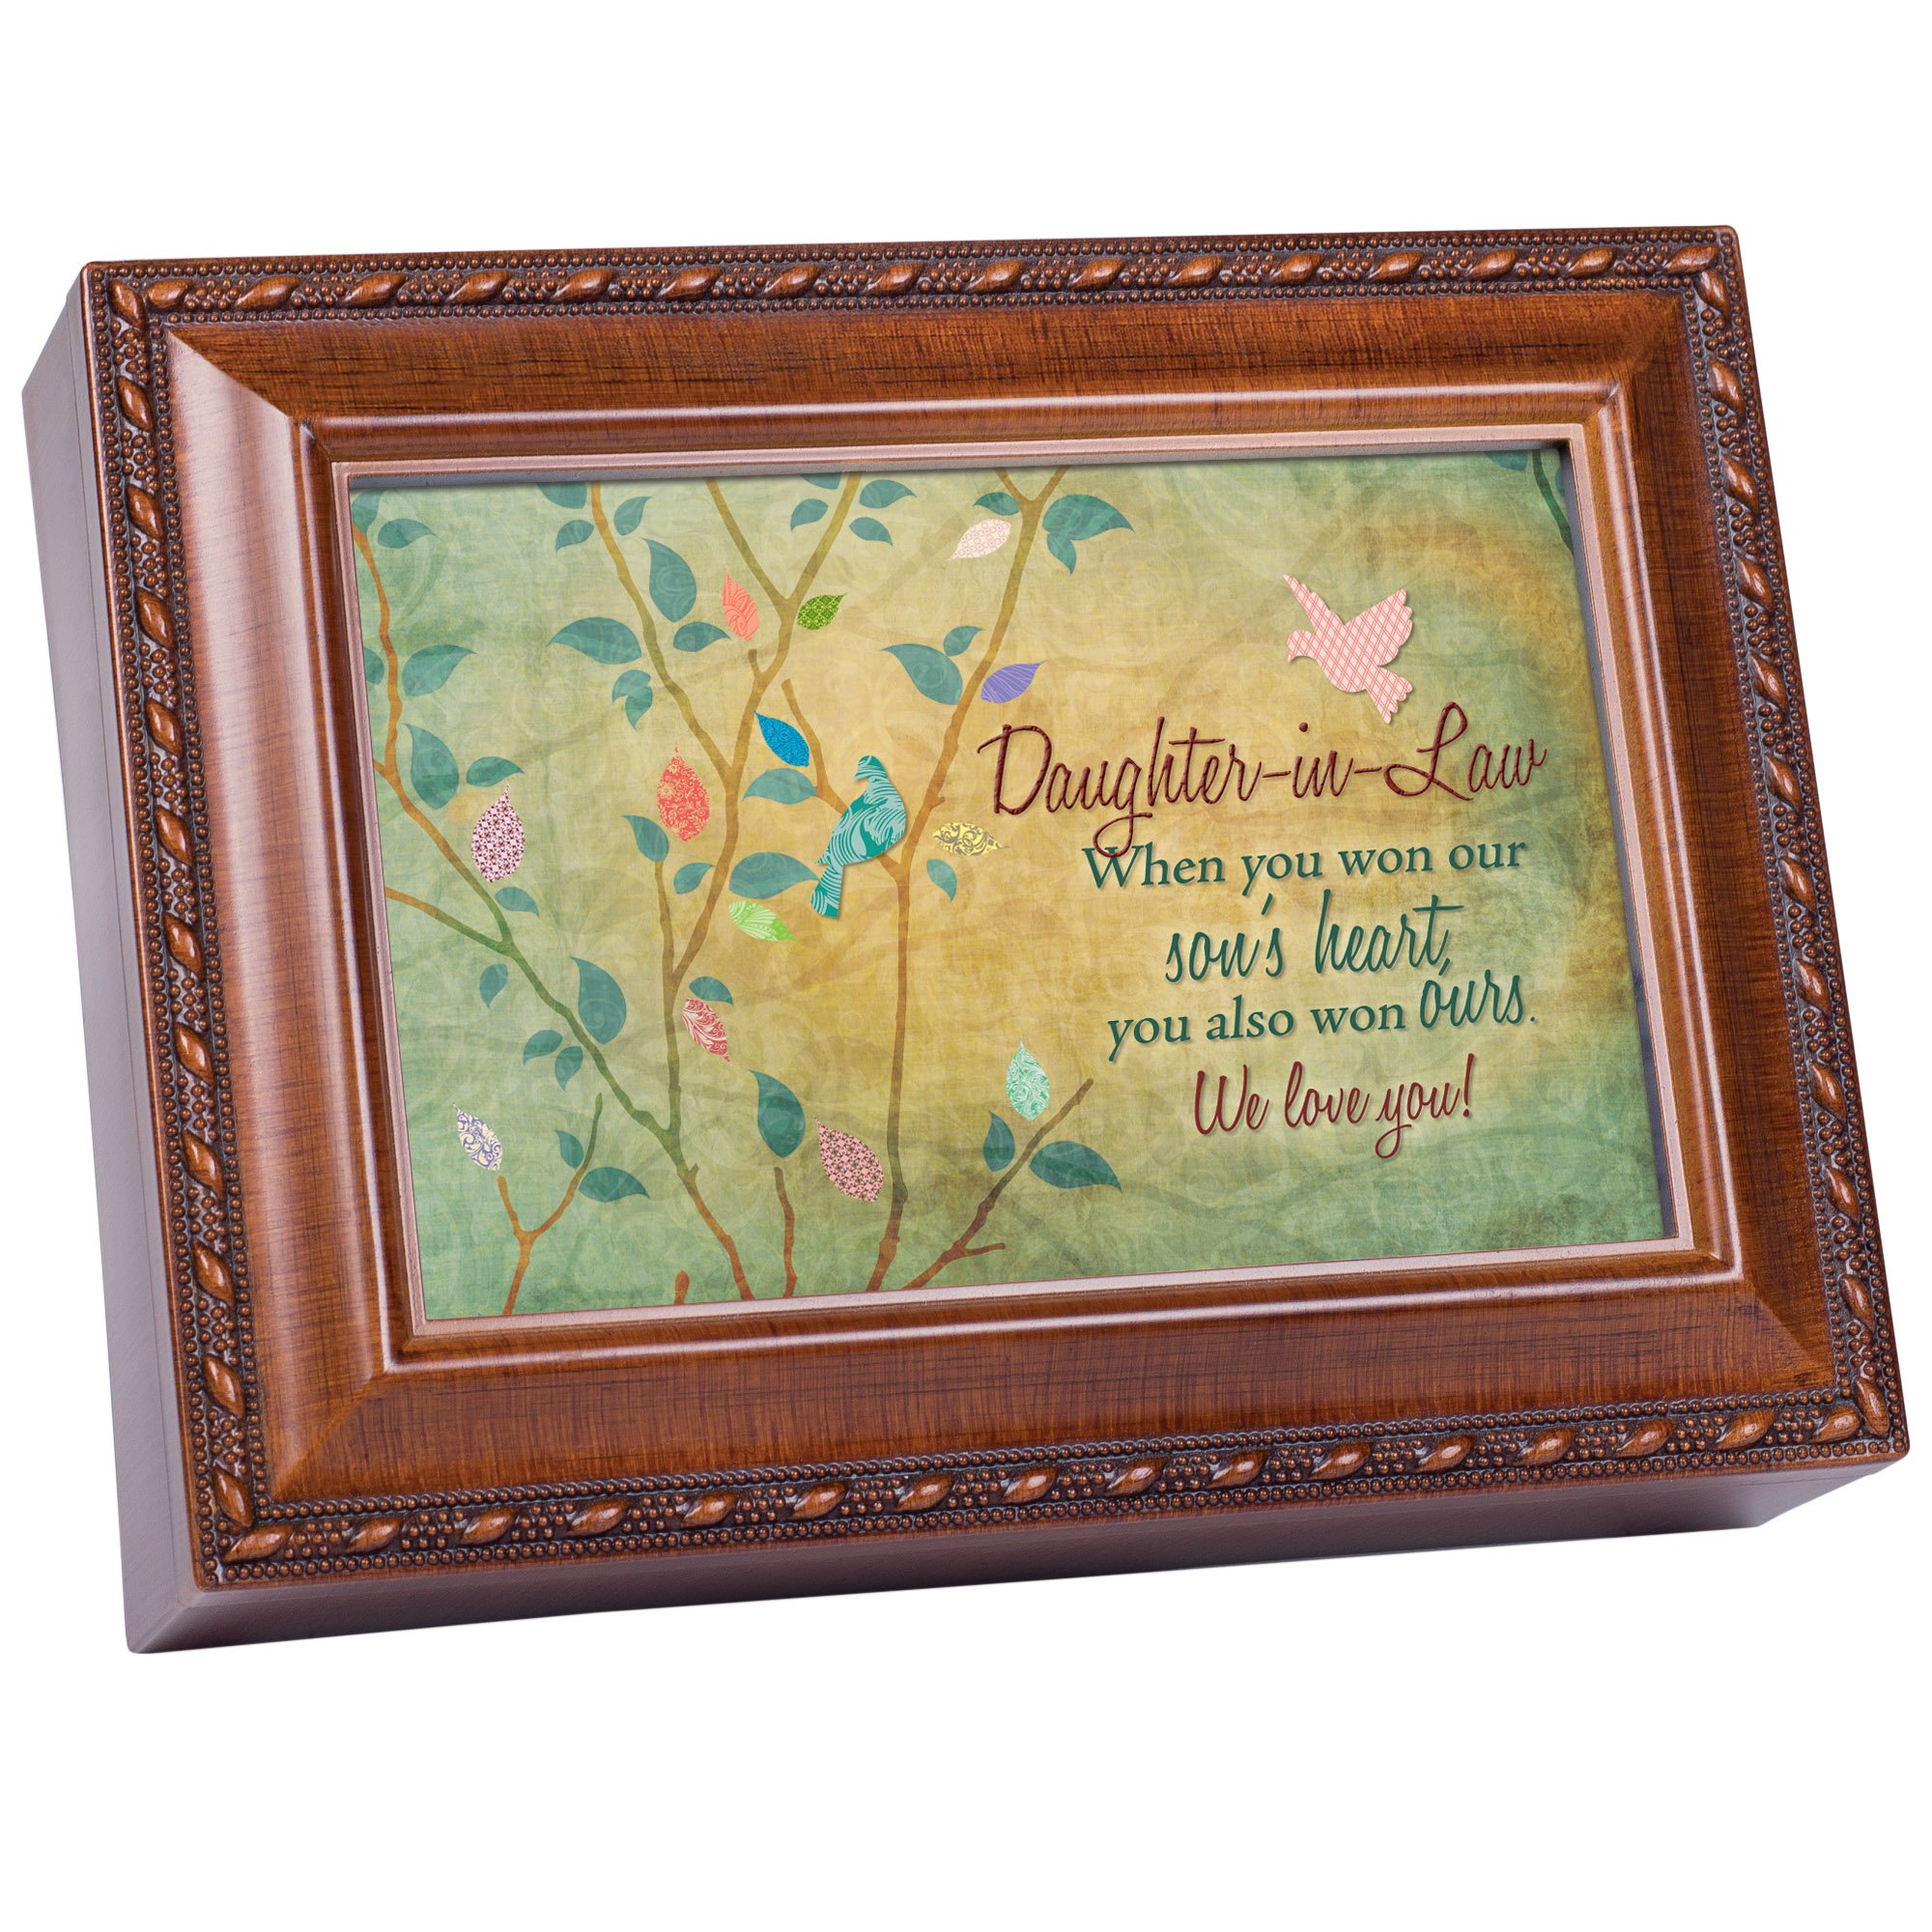 Daughter-in-Law Rich Woodgrain Finish Jewelry Music Box - Plays You Light Up My Life